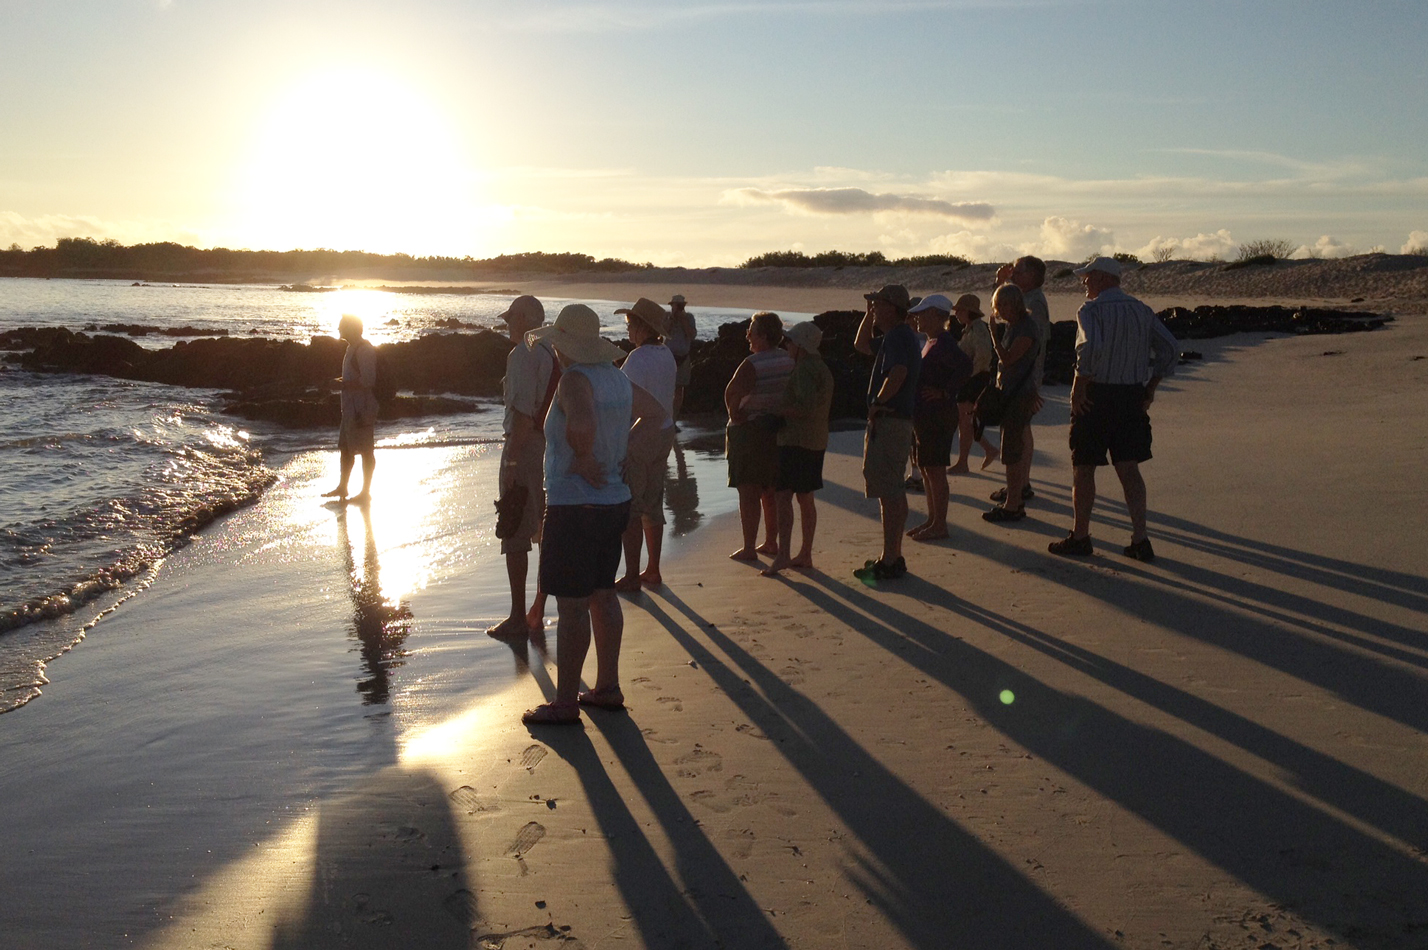 Our group casting long shadows.